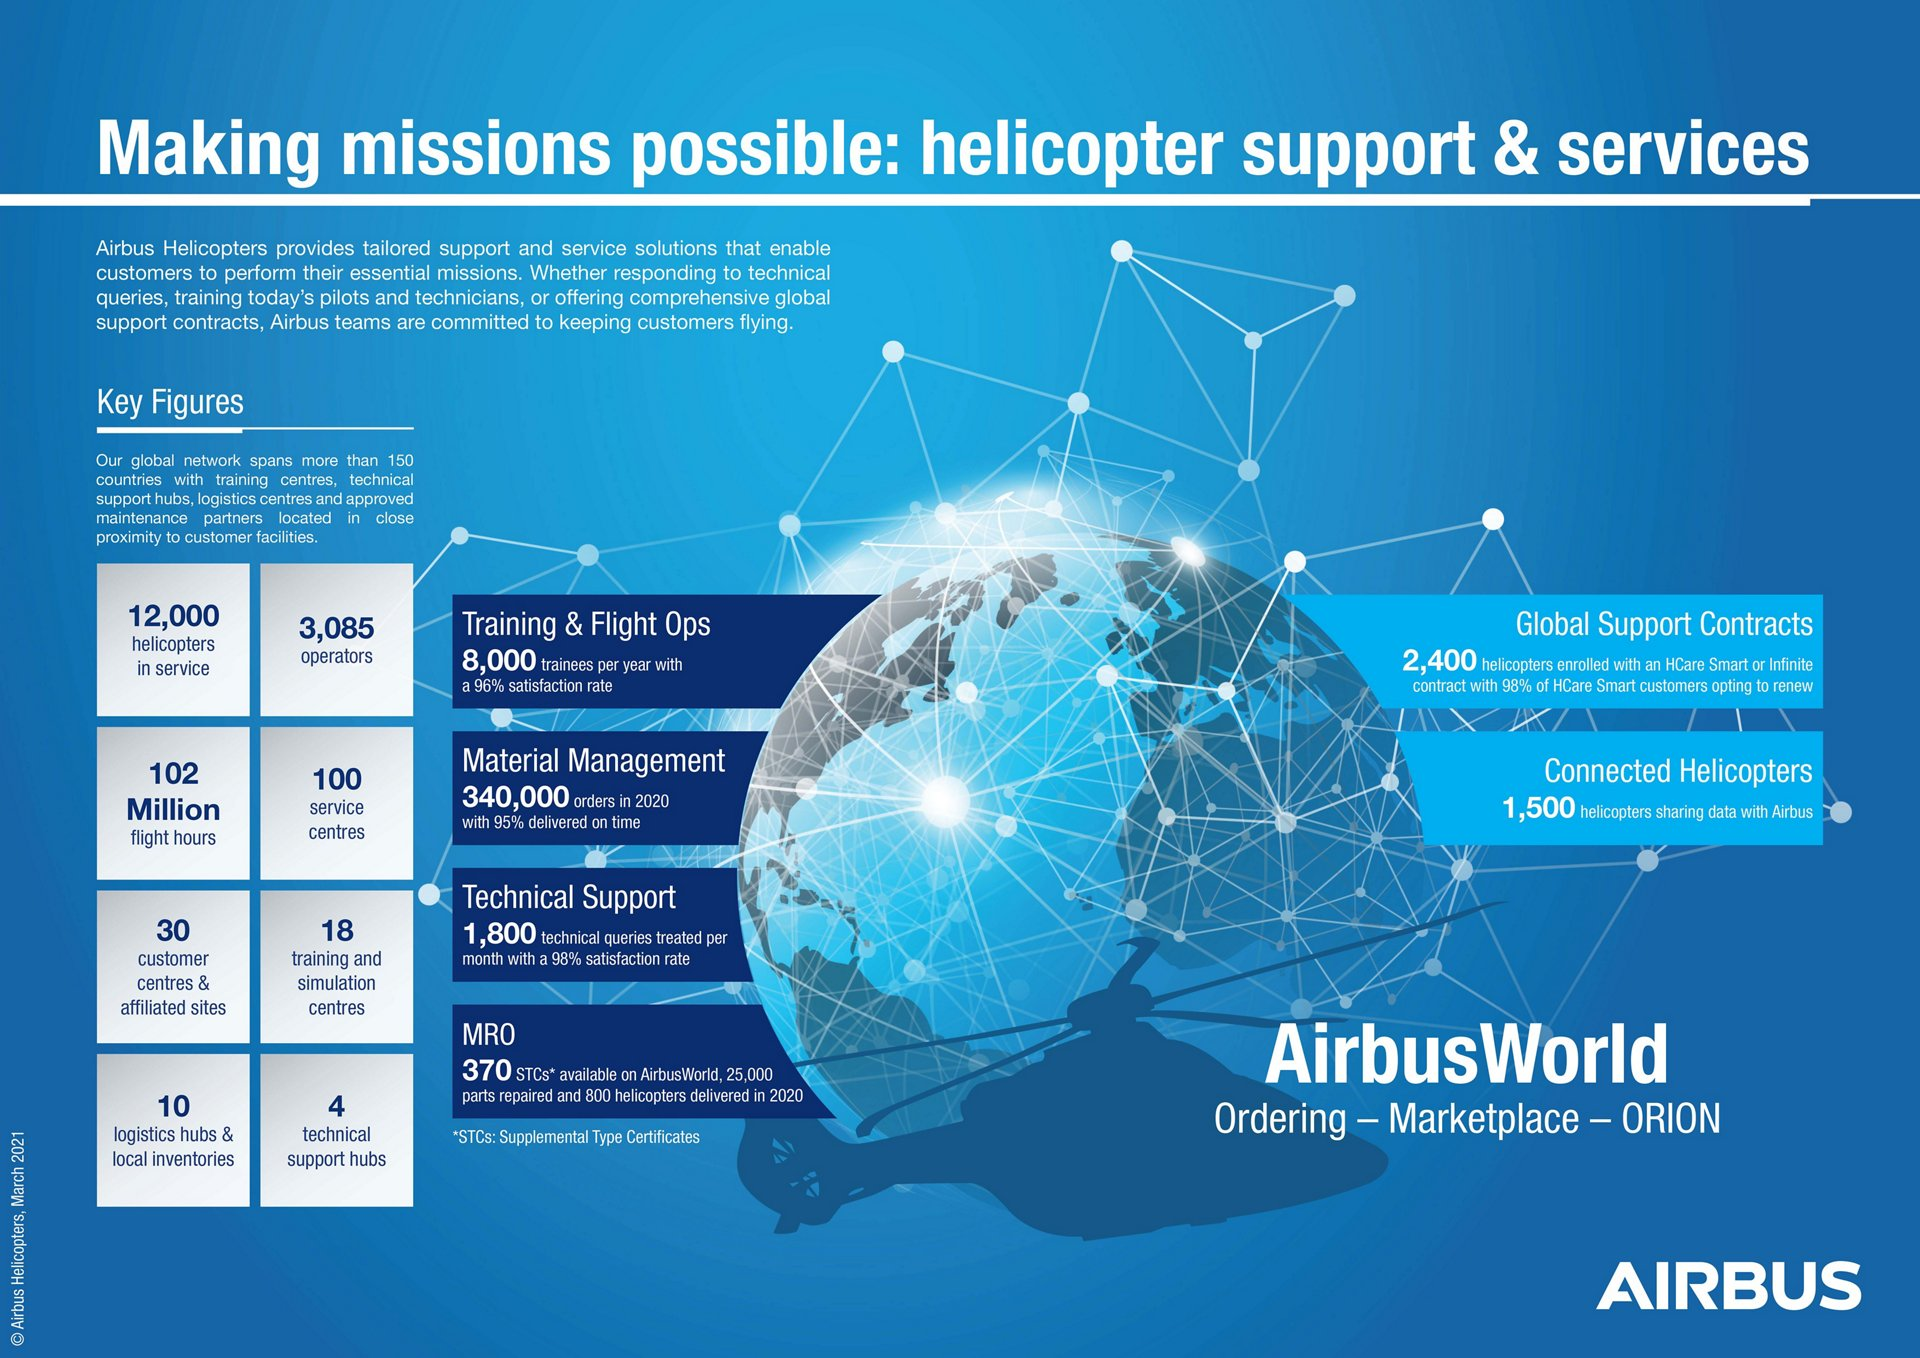 Making missions possible: helicopter support & services